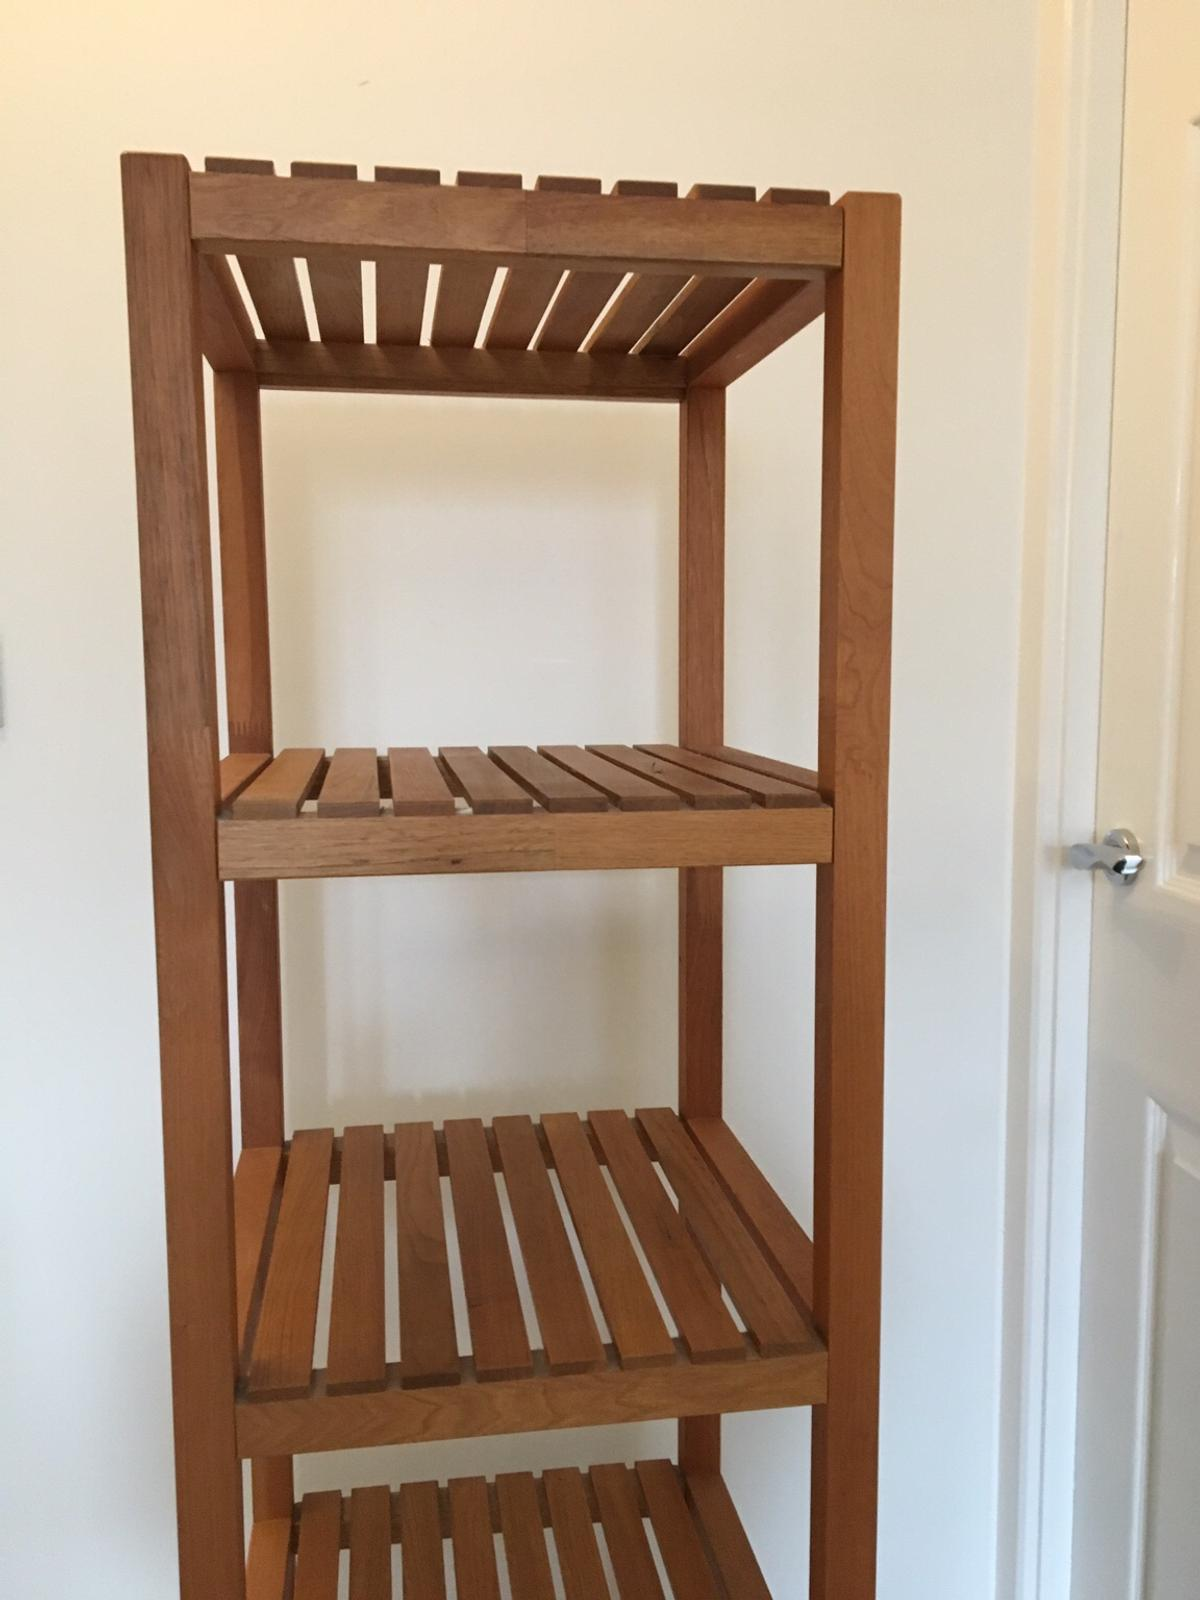 Bathroom Shelving Unit In B90 Solihull